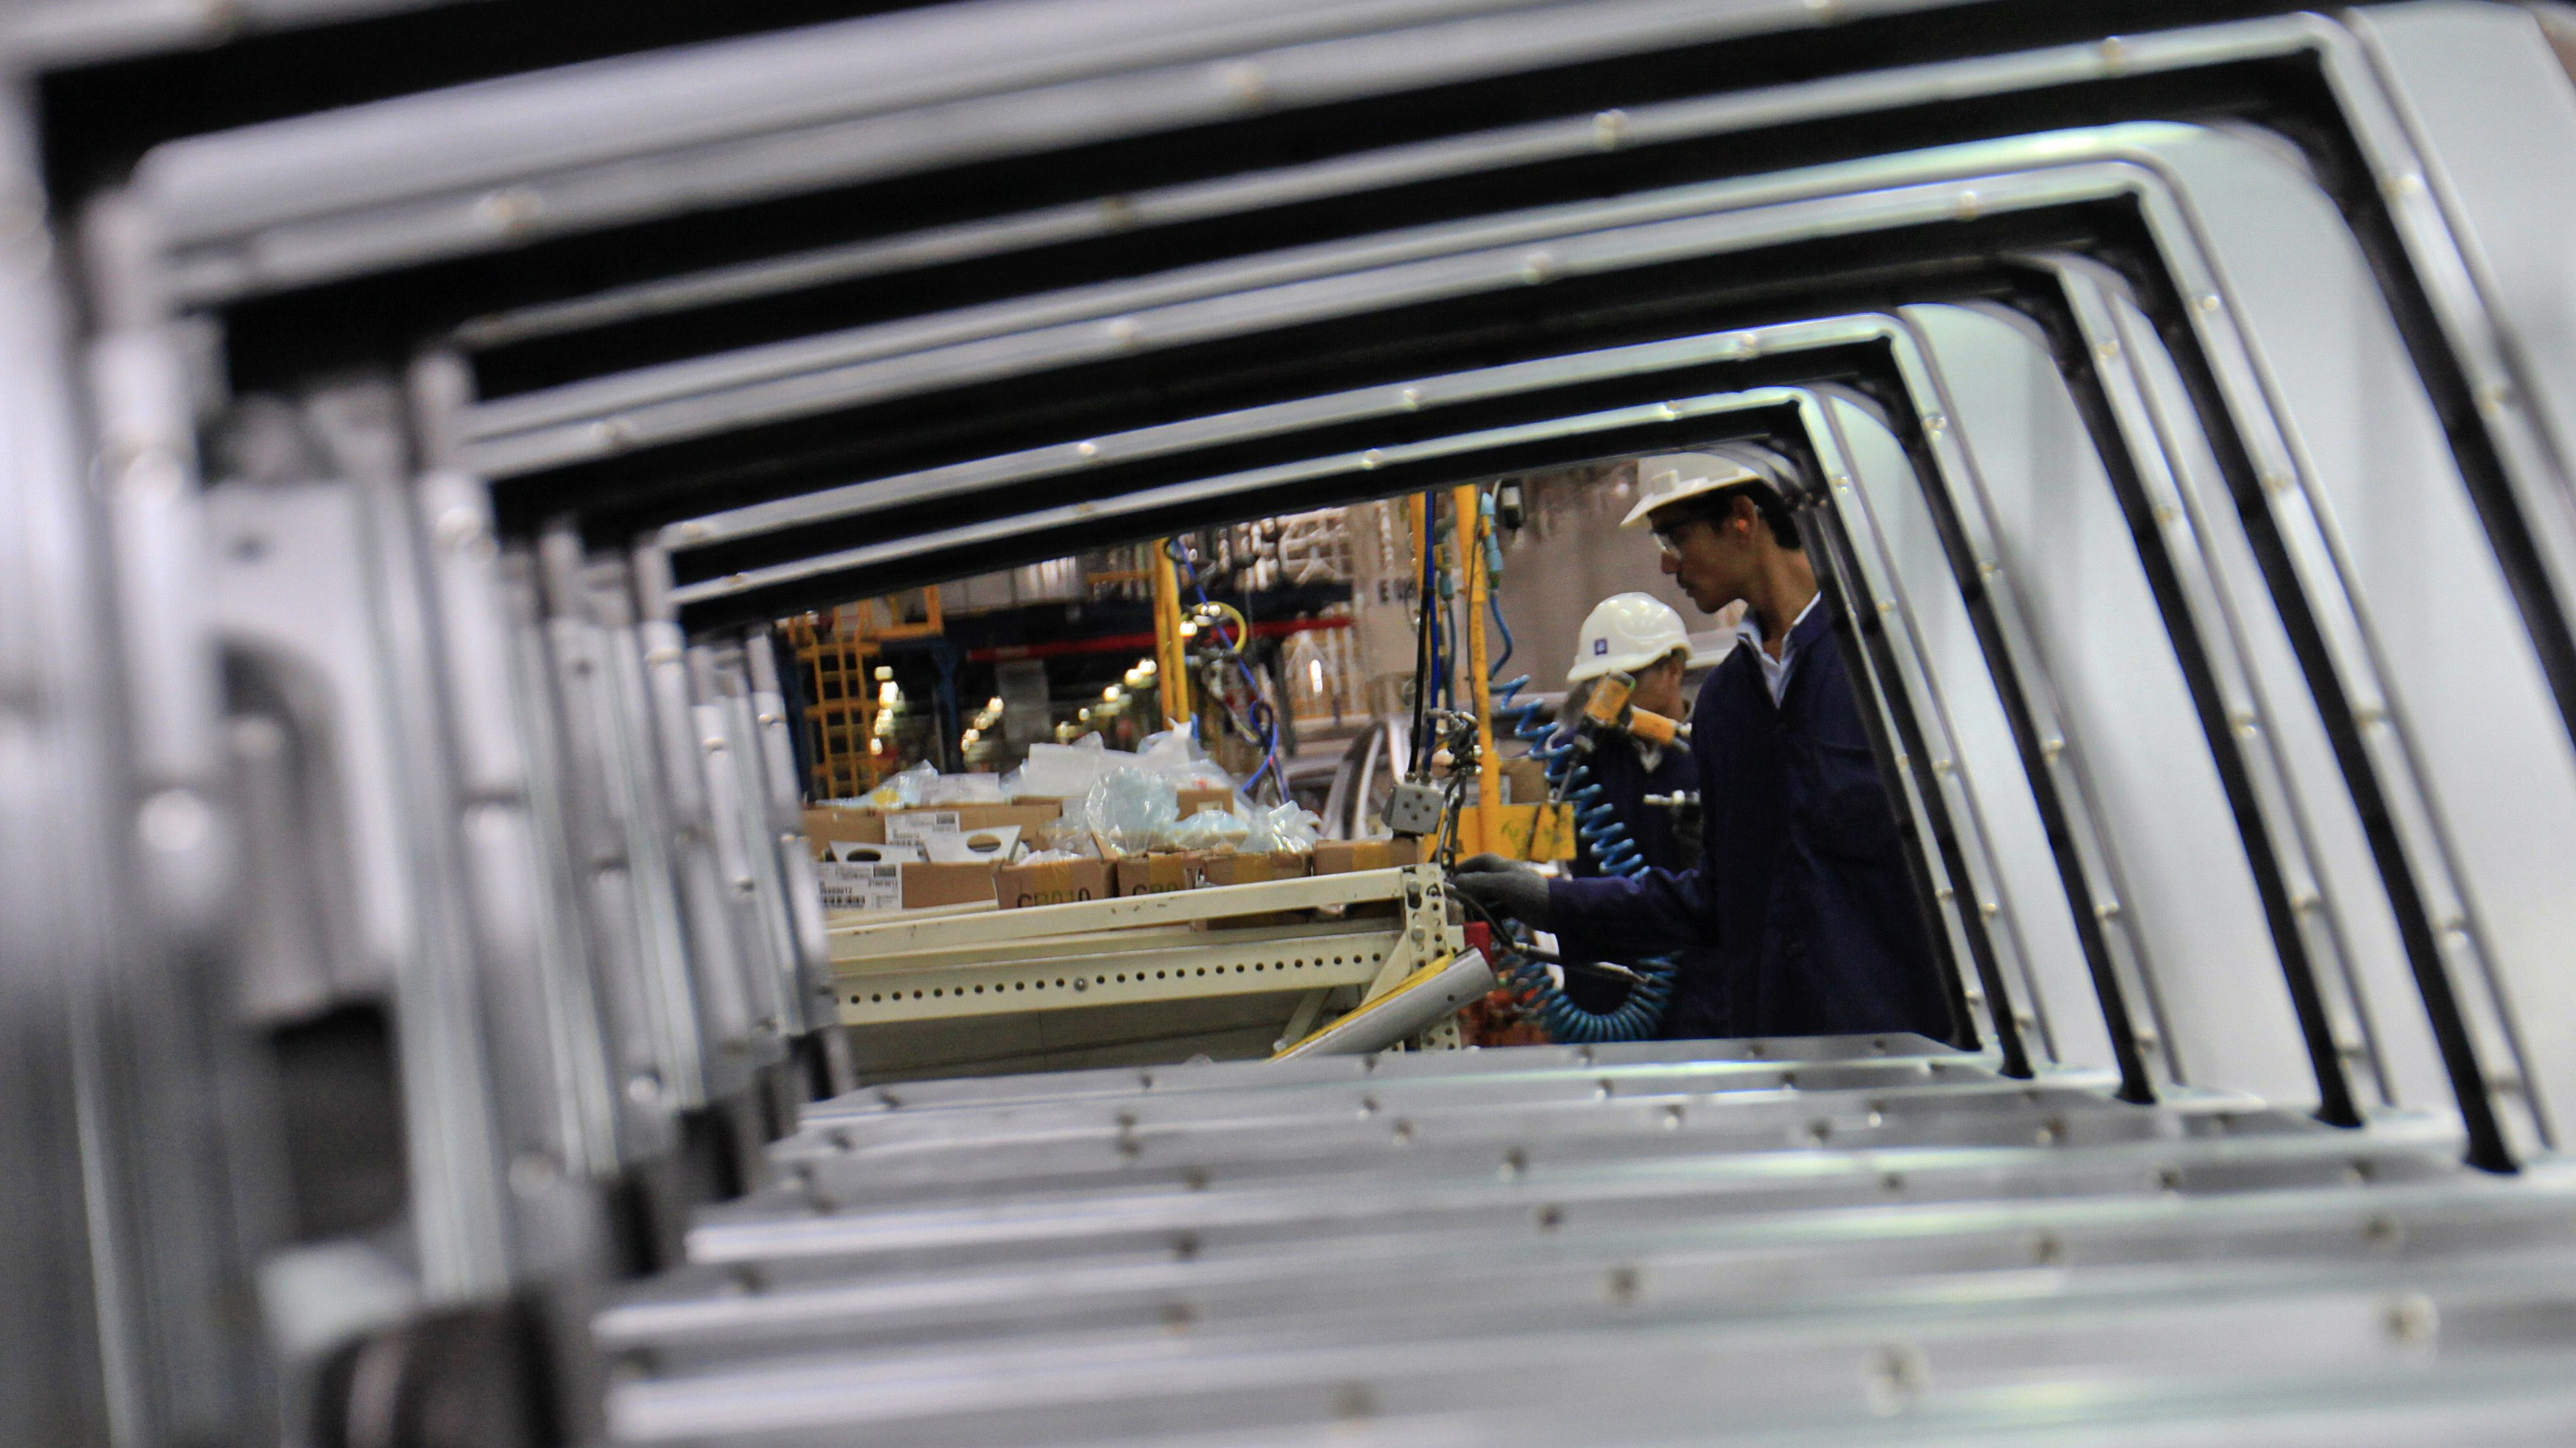 Employees are seen working through the doors of Chevrolet Beat cars on an assembly line at the General Motors plant in Talegaon